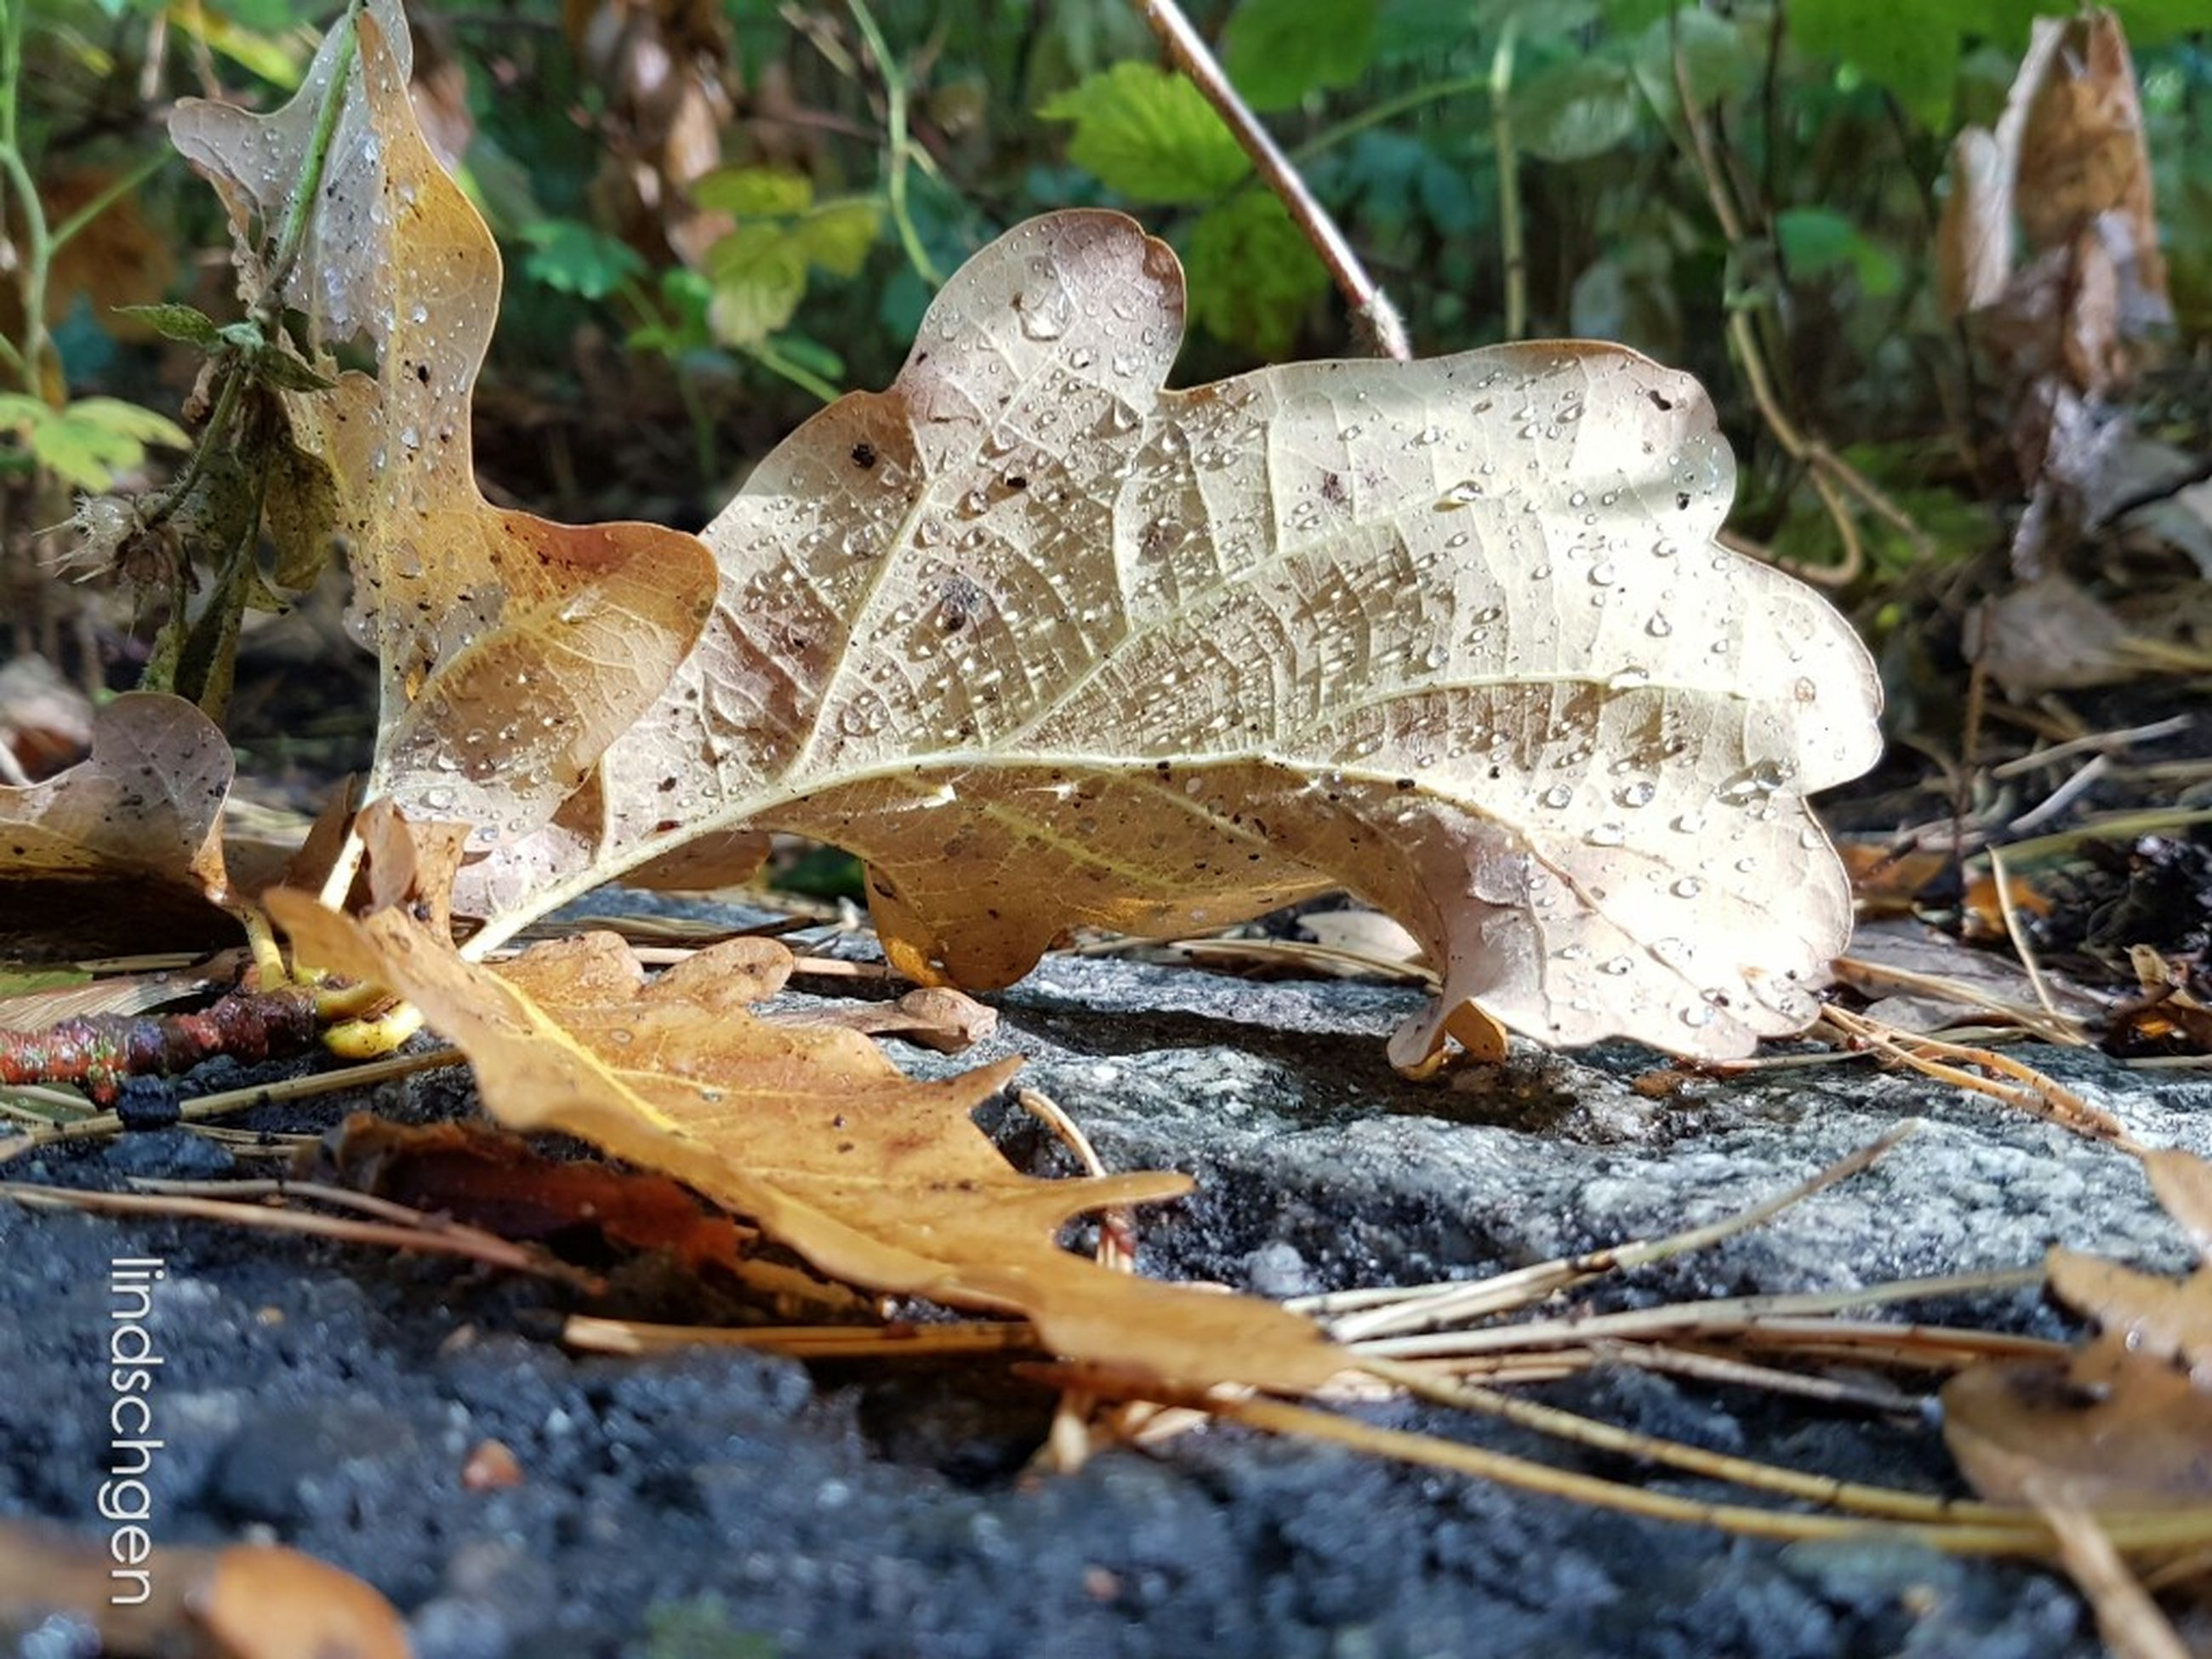 leaf, dry, autumn, change, close-up, season, selective focus, leaves, nature, maple leaf, day, fallen leaf, outdoors, fragility, tranquility, non-urban scene, vibrant color, beauty in nature